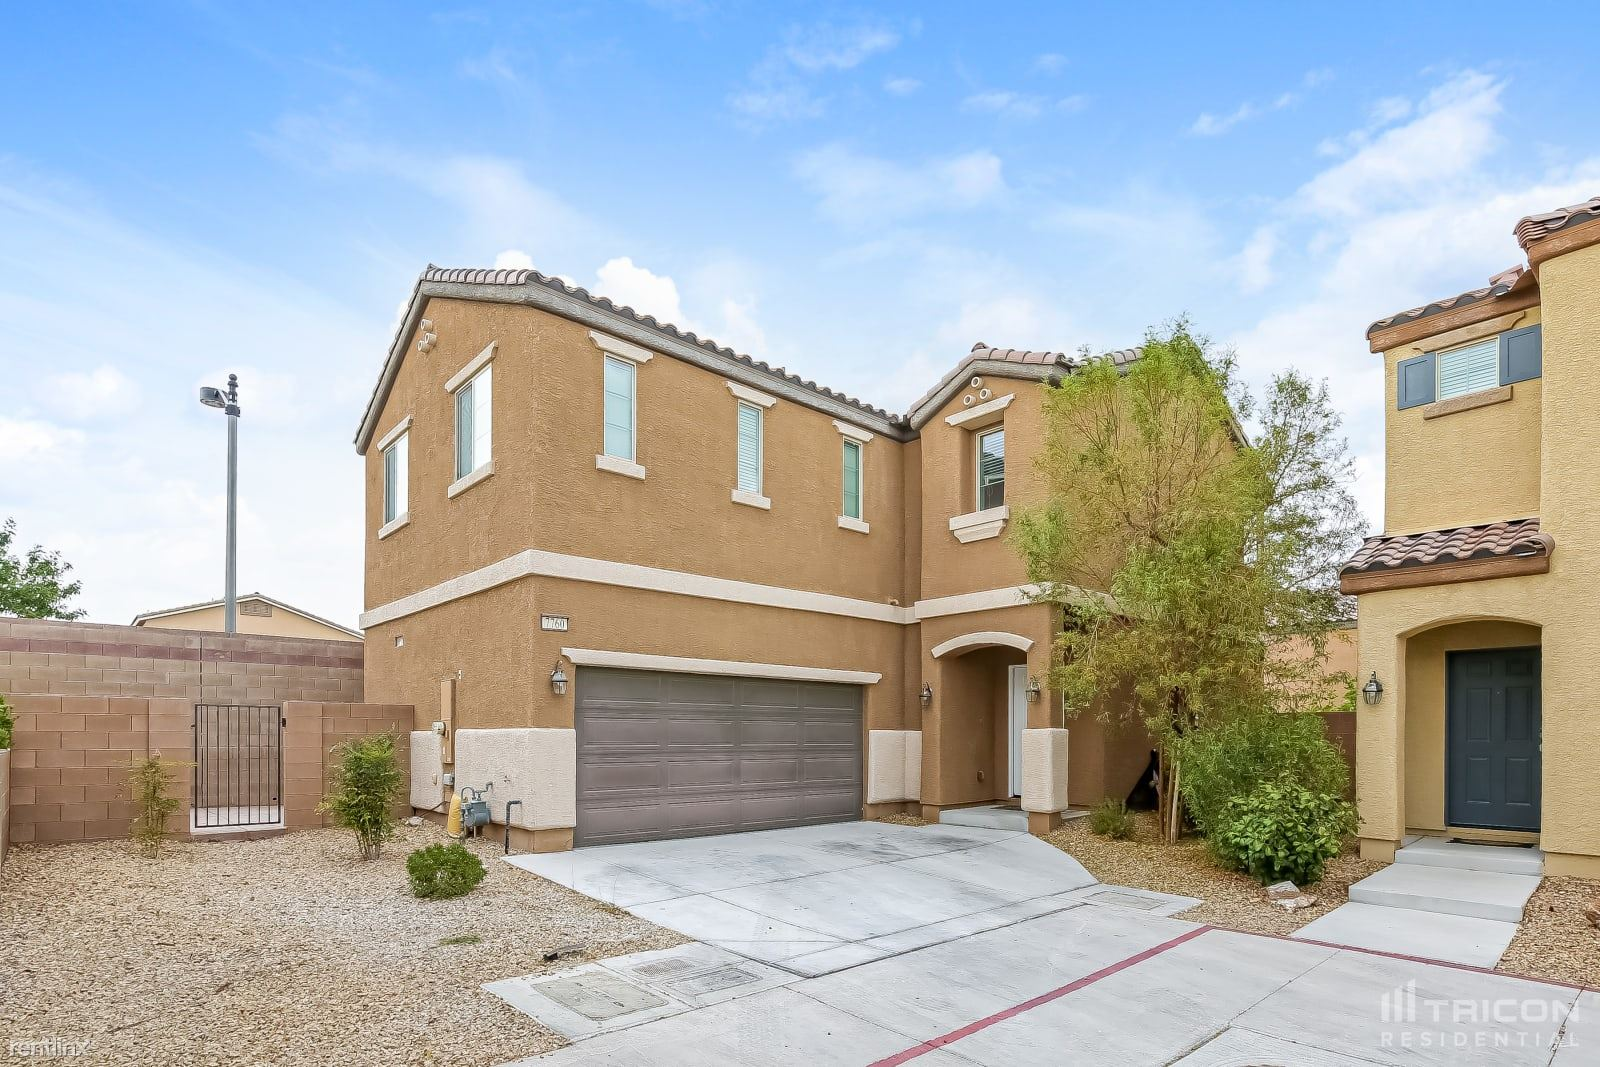 7760 Needlepoint Court - 2349USD / month